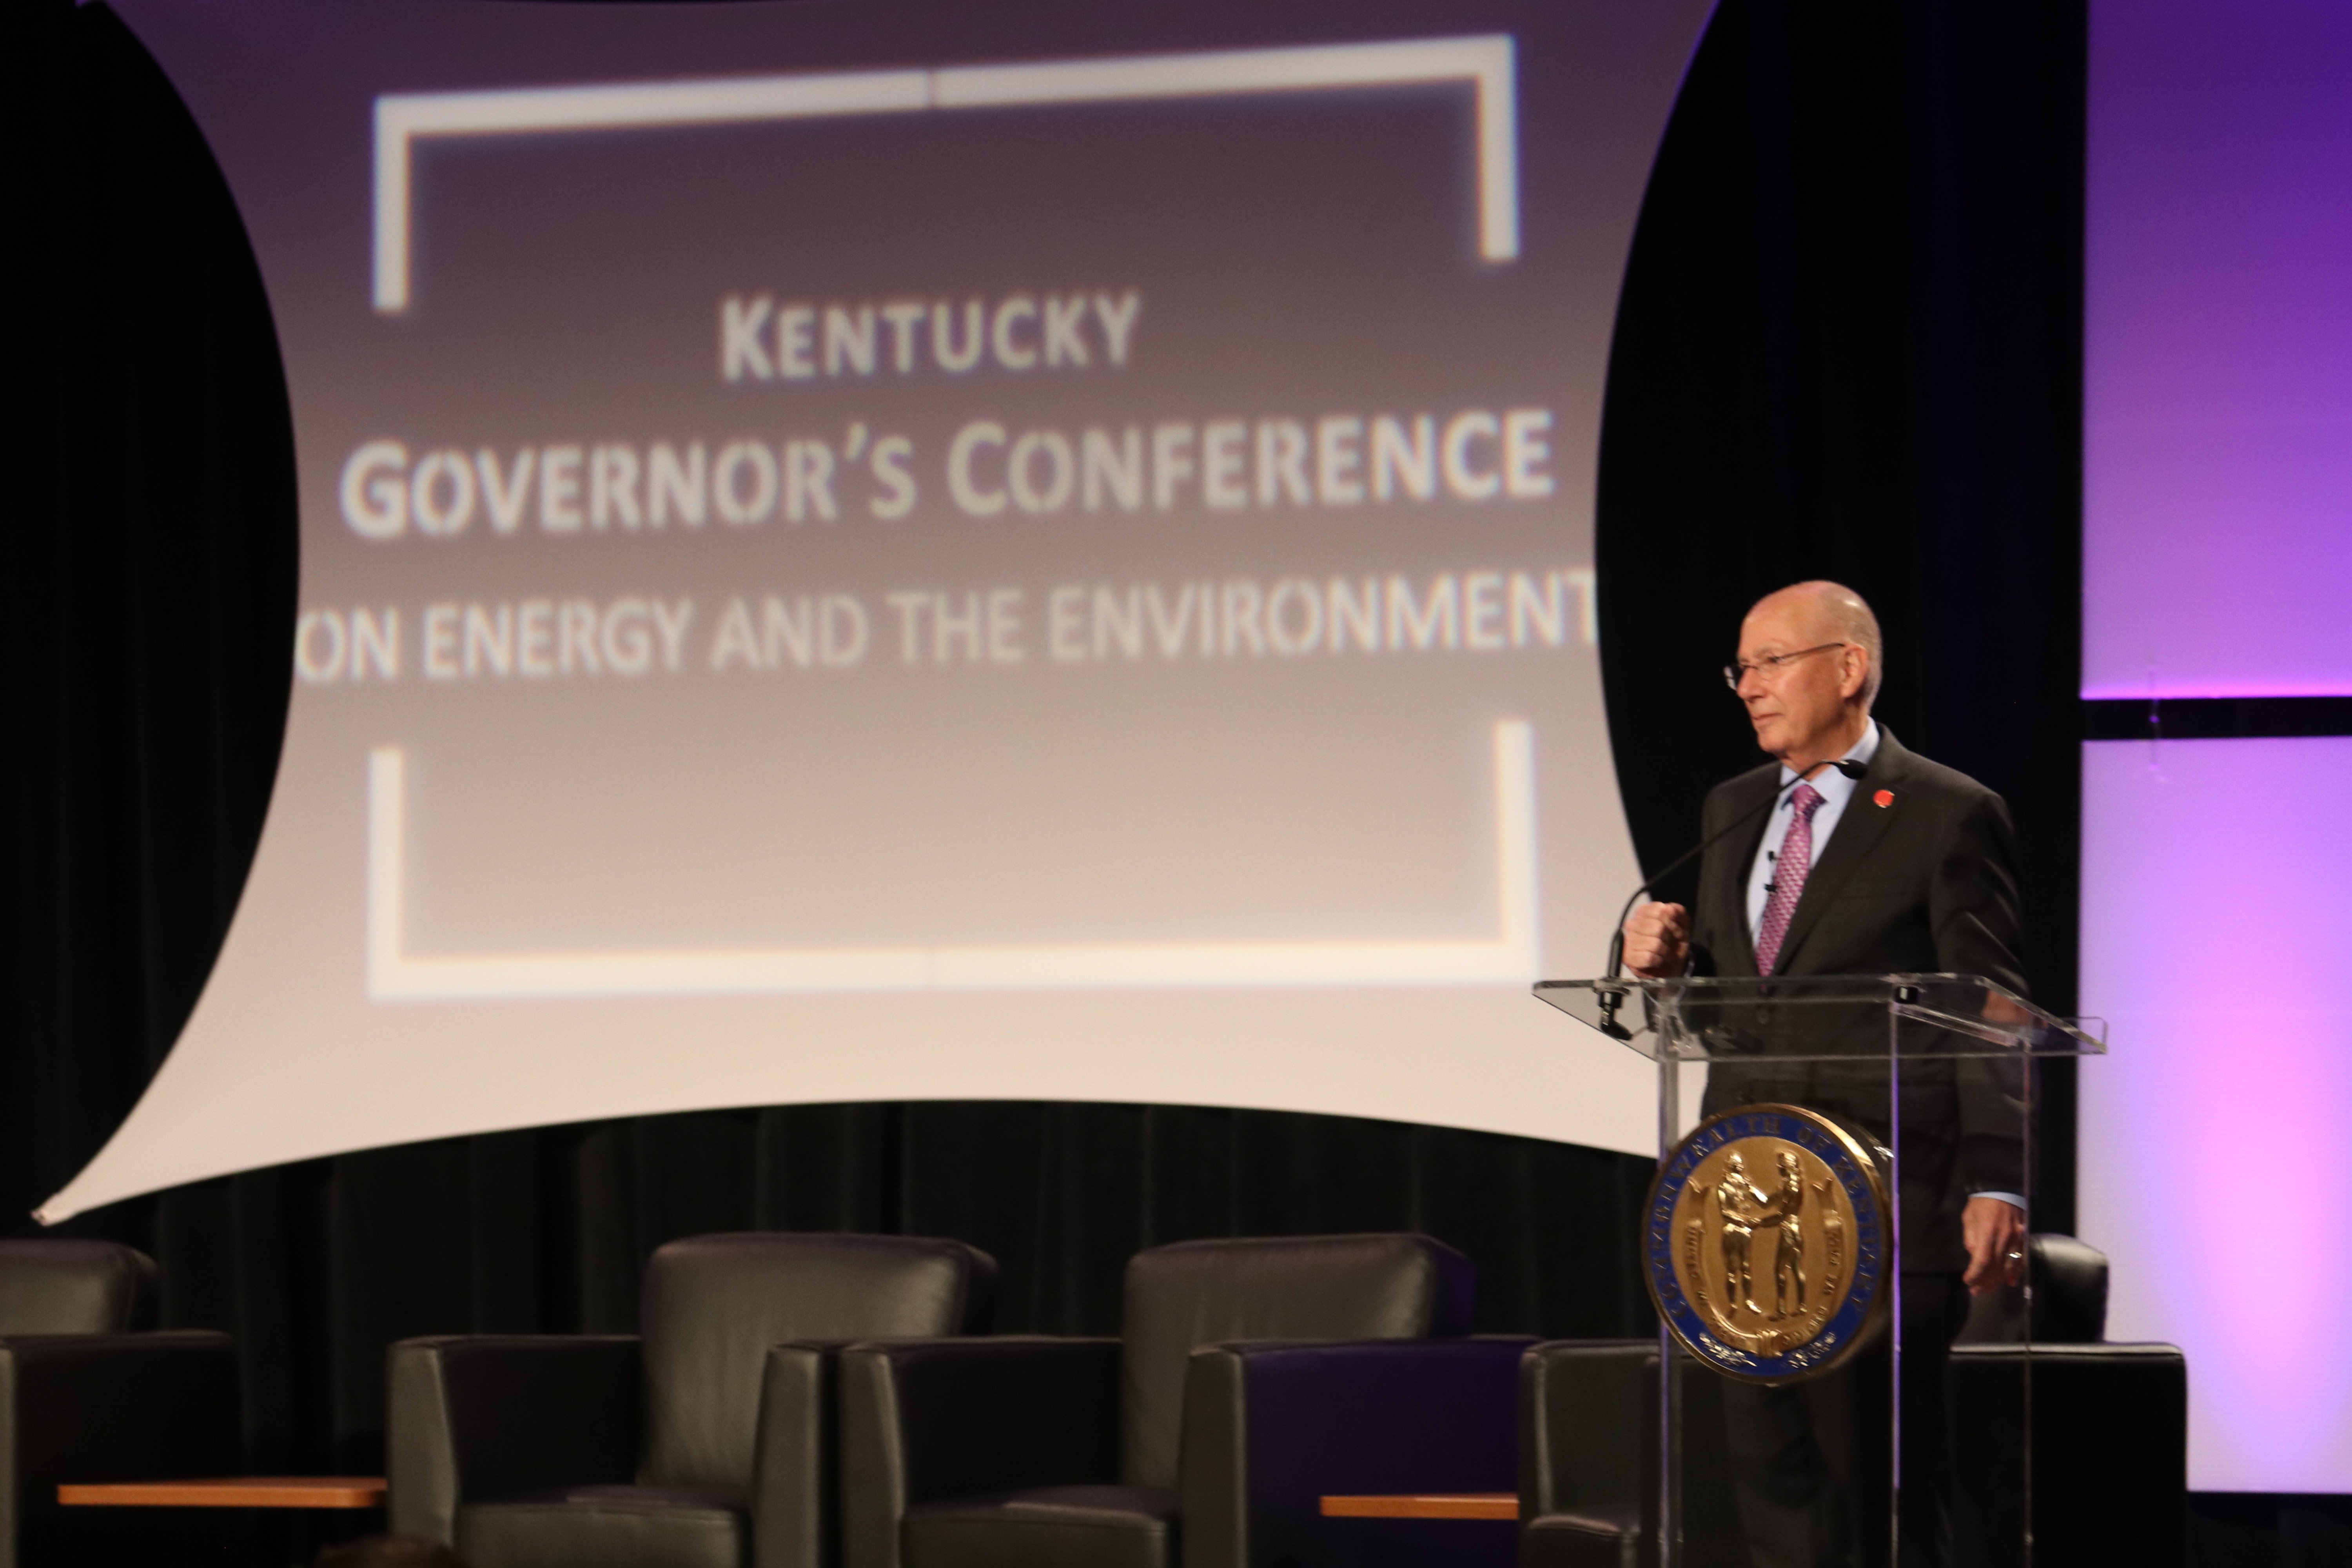 The 2017 Governor's Conference on Energy and the Environment in pictures